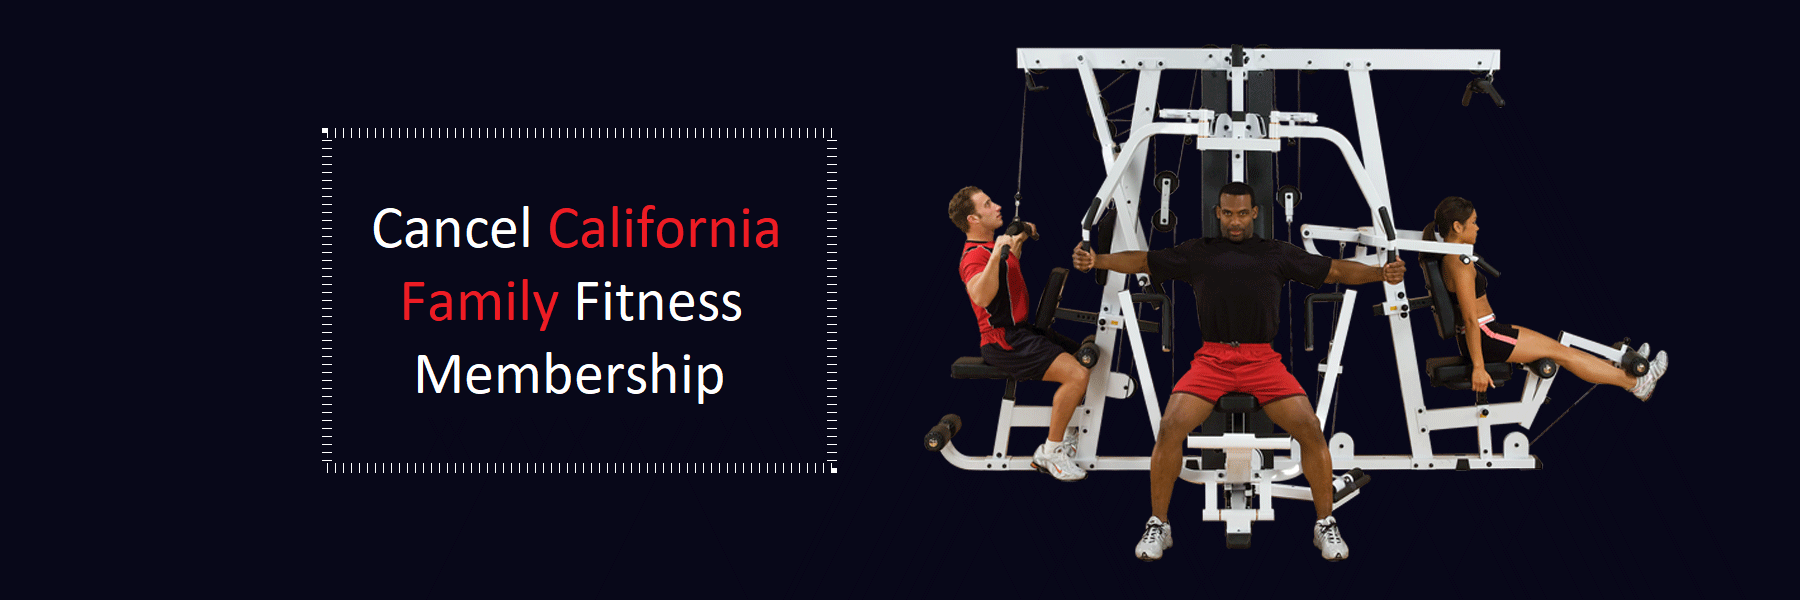 Cancel-California-Family-Fitness-Membership